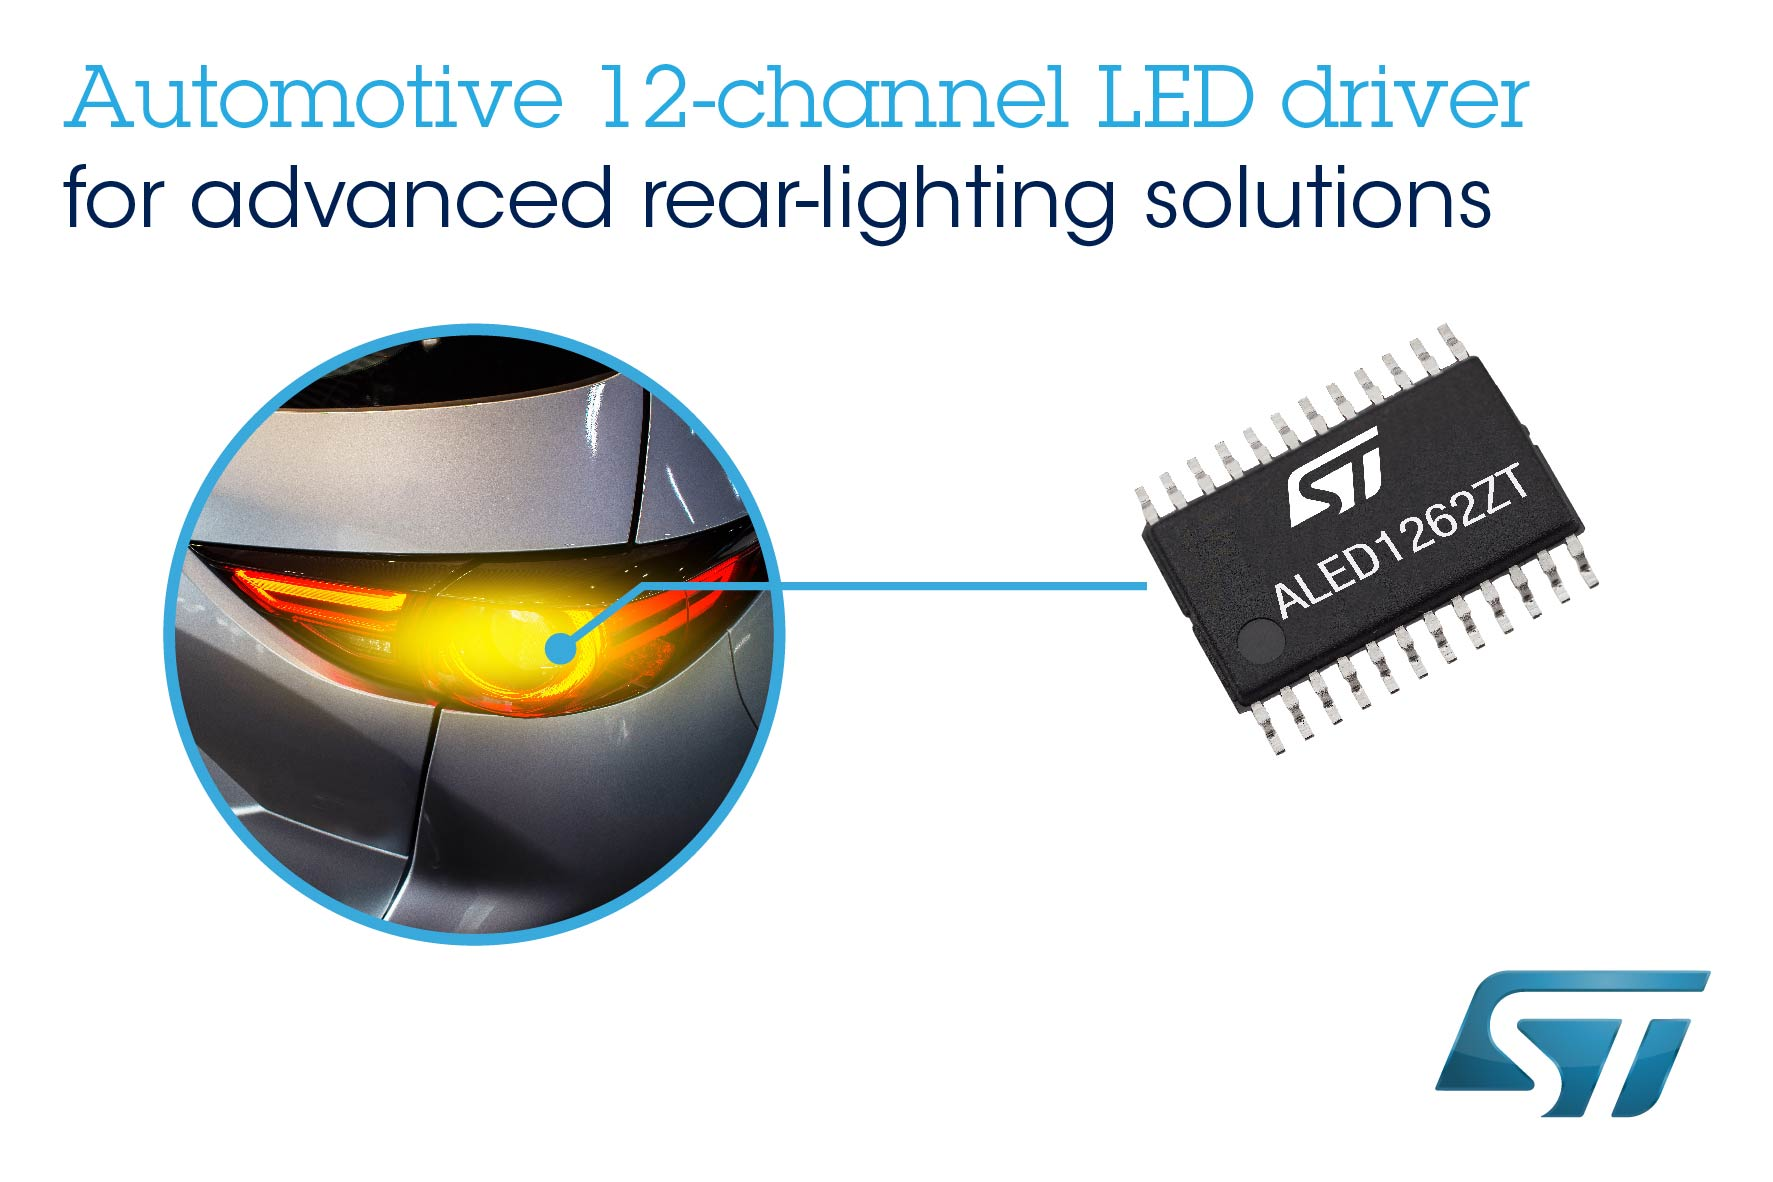 12-channel LED driver for auto rear combination lamps and interior lighting